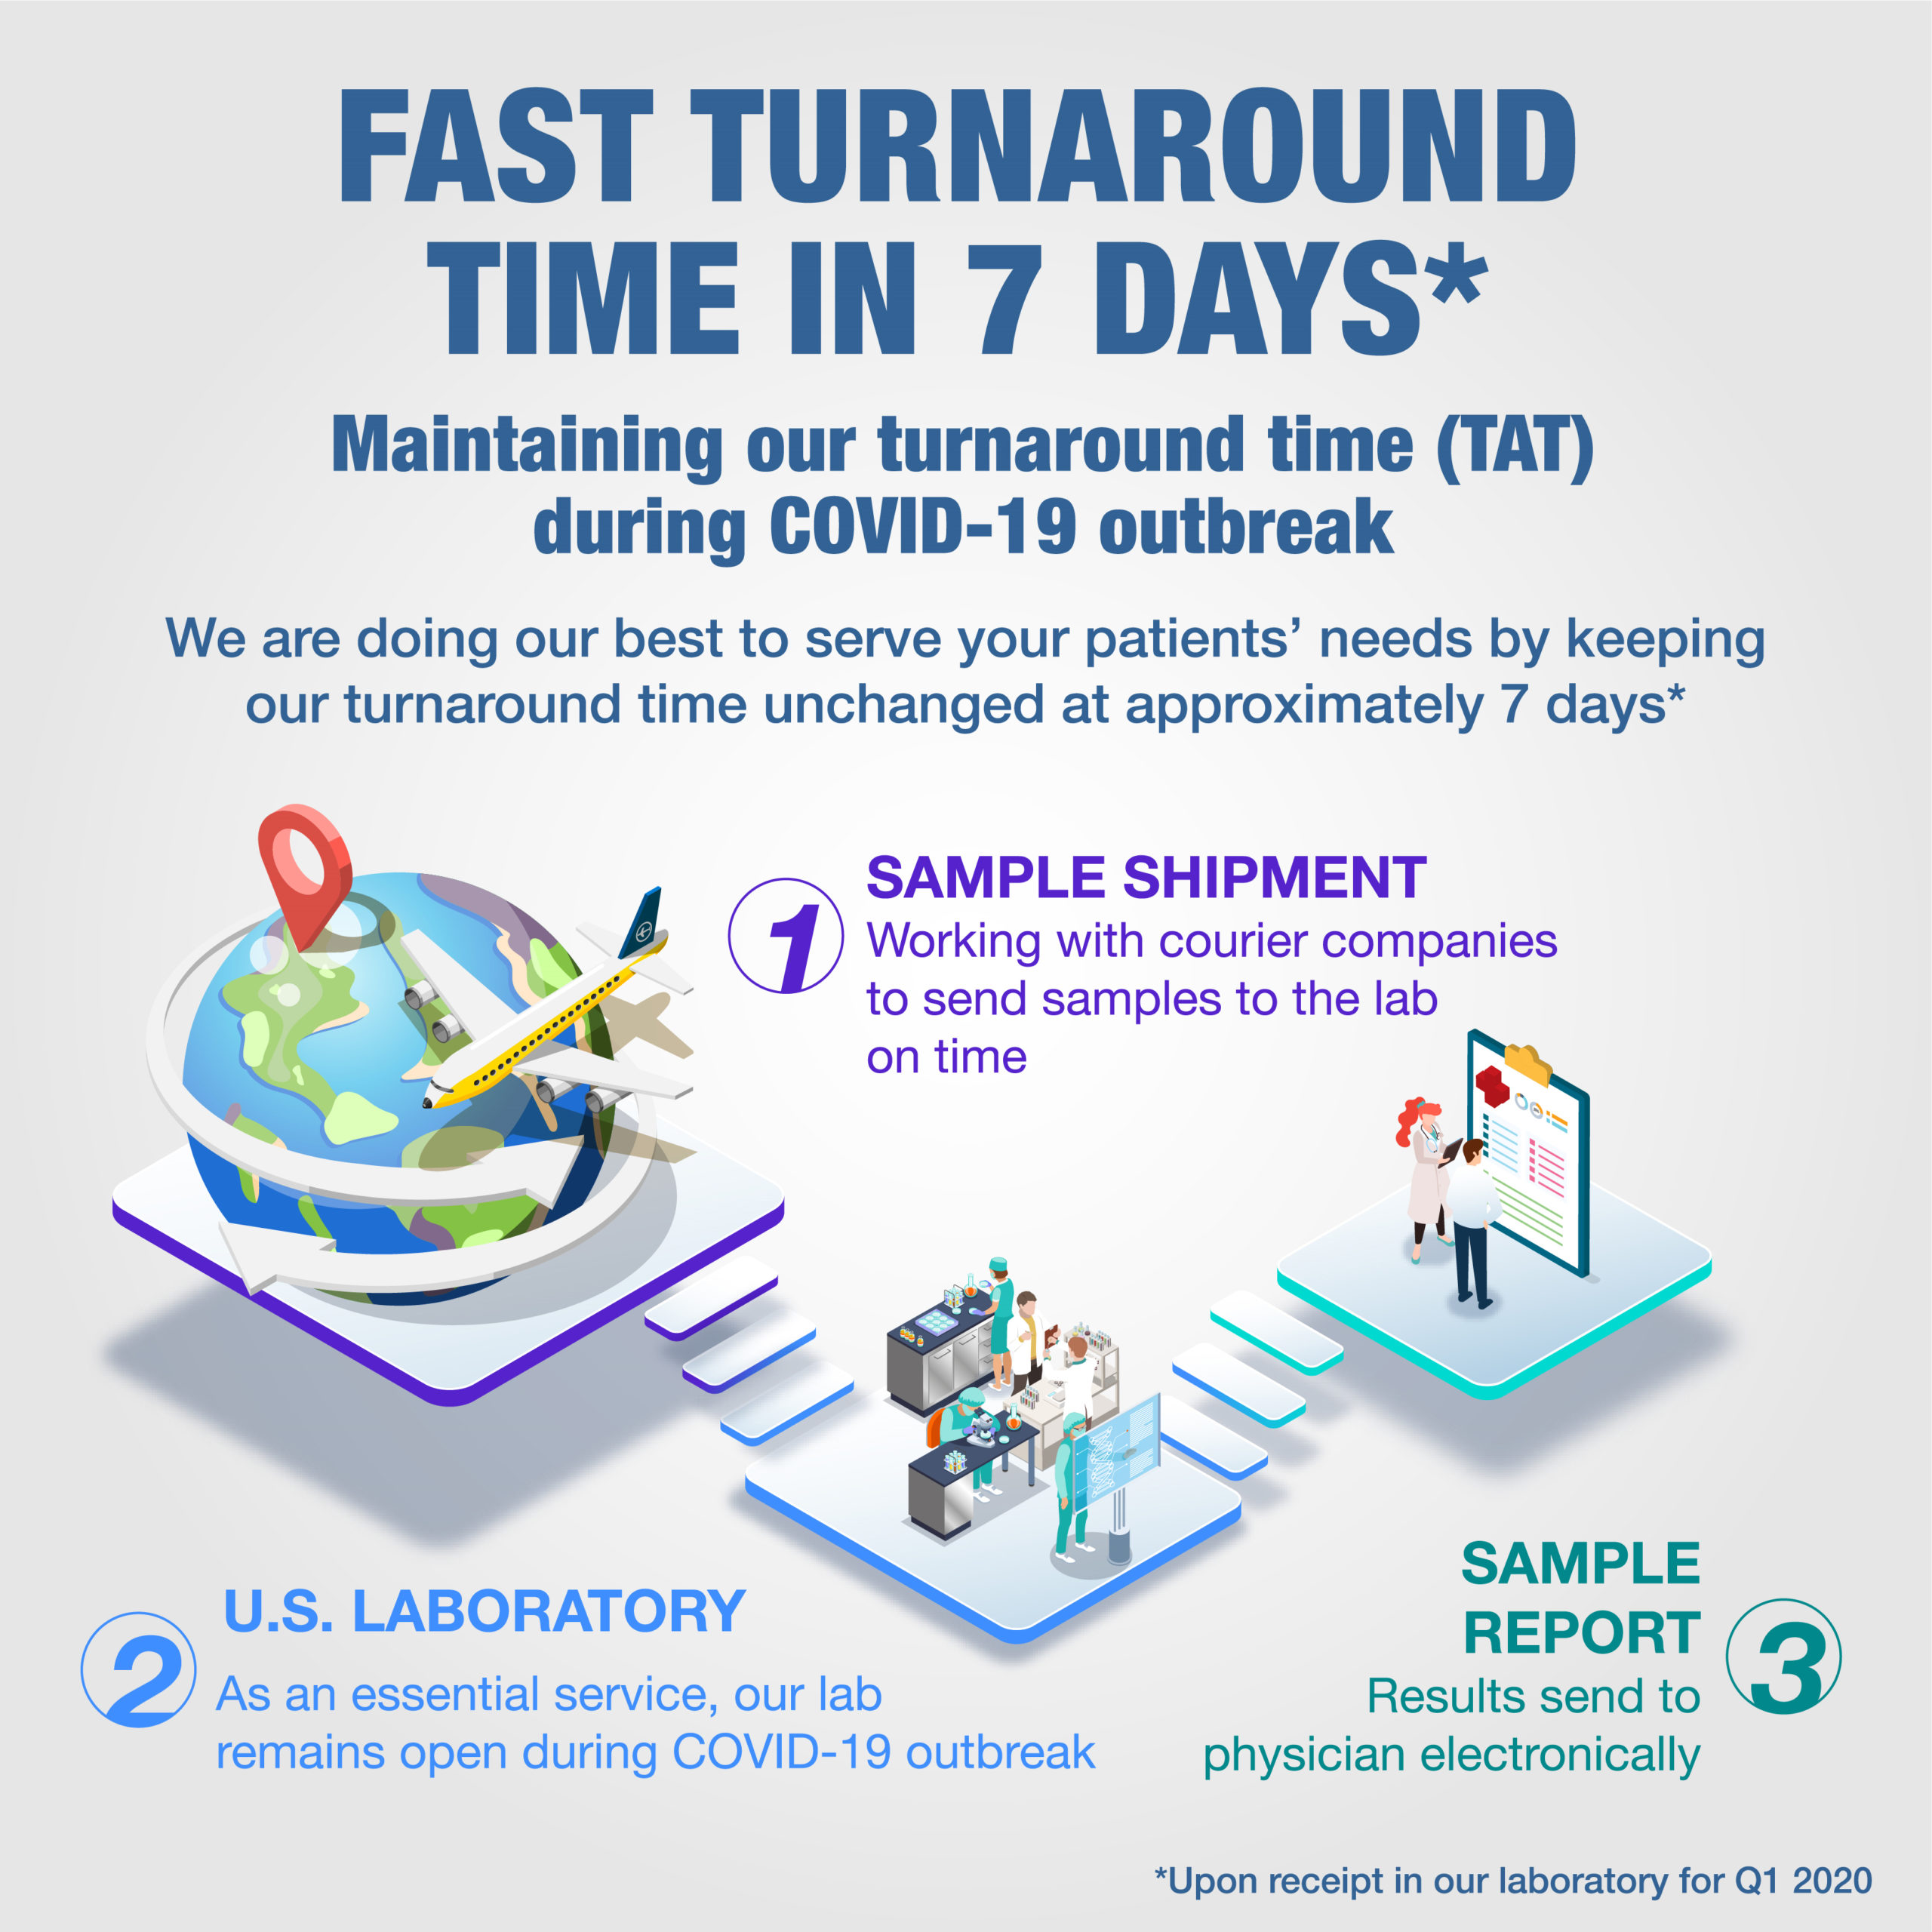 Our turnaround time for blood sample results has been maintained at approximately 7 days upon receipt in our laboratory